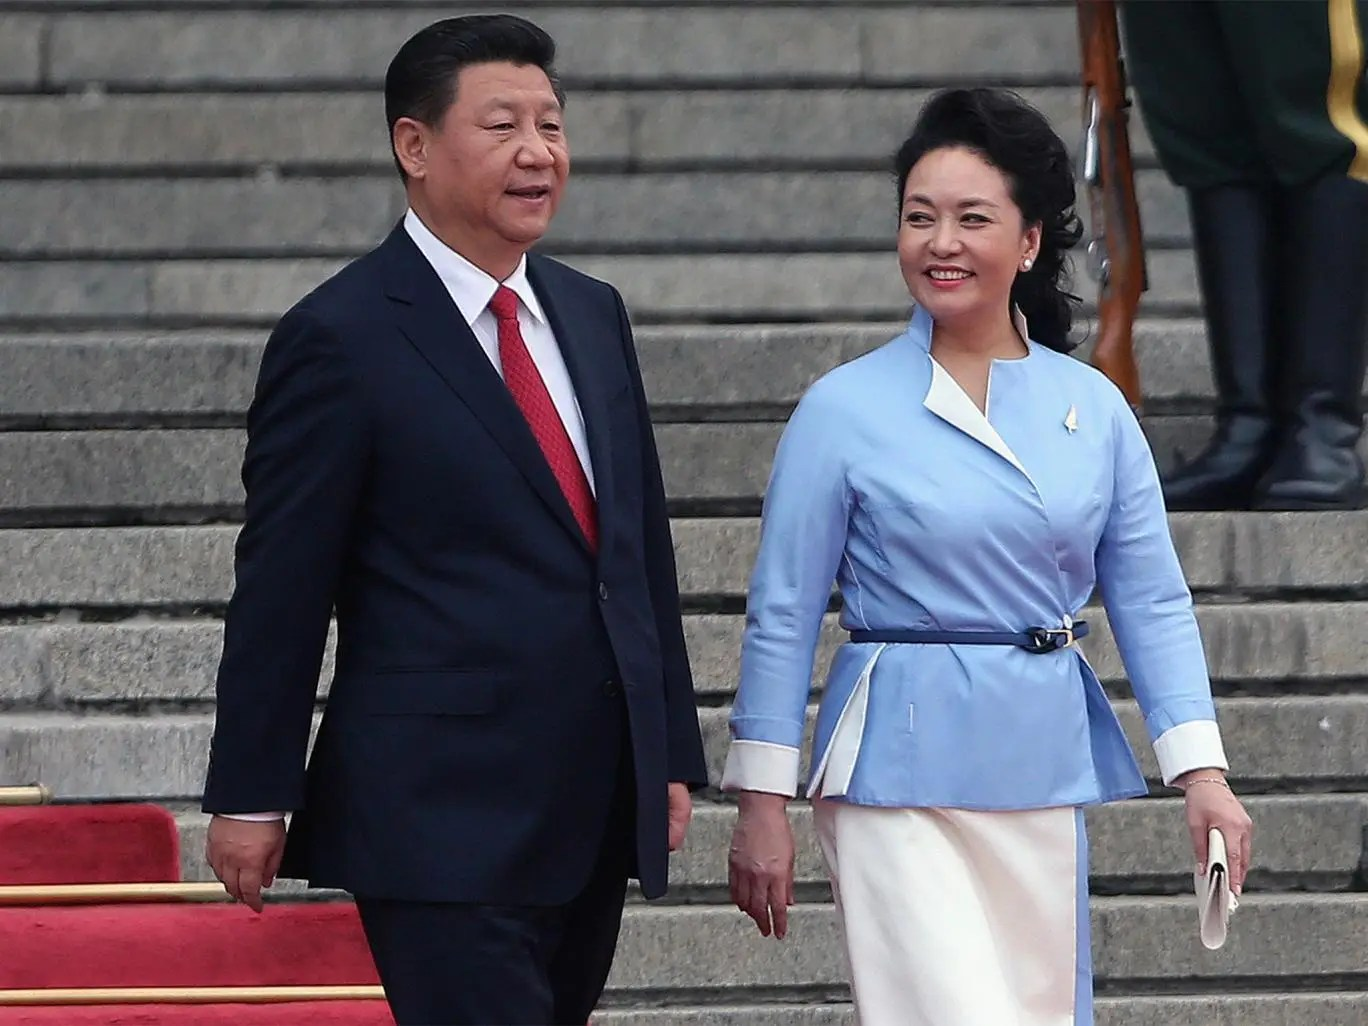 Xi Jinping (L) and his wife Peng Liyuan attend a welcome ceremony ...